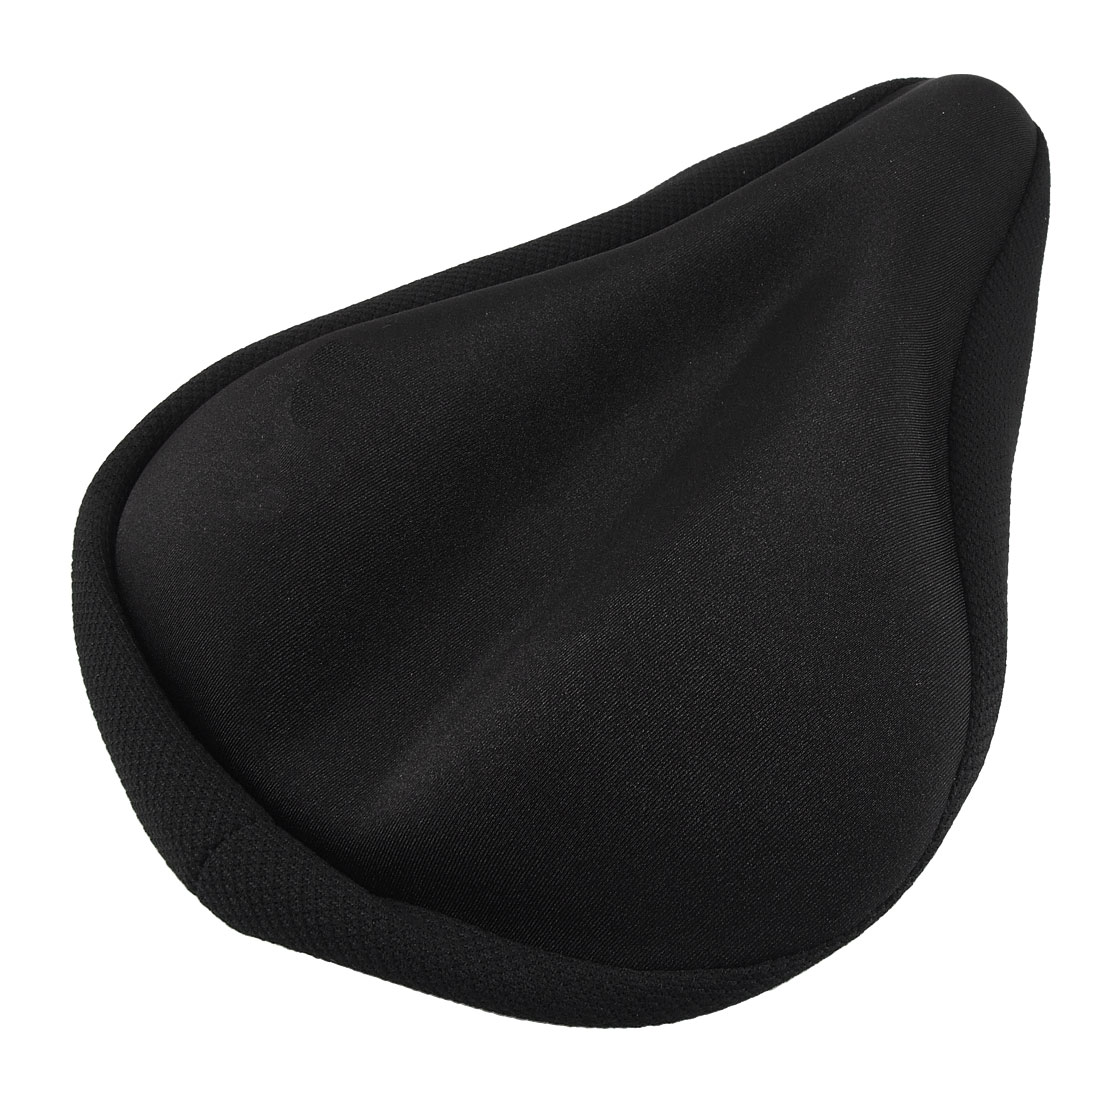 Bicycle Soft Gel Middle Hollow Black Saddle Cover Seat Cushion